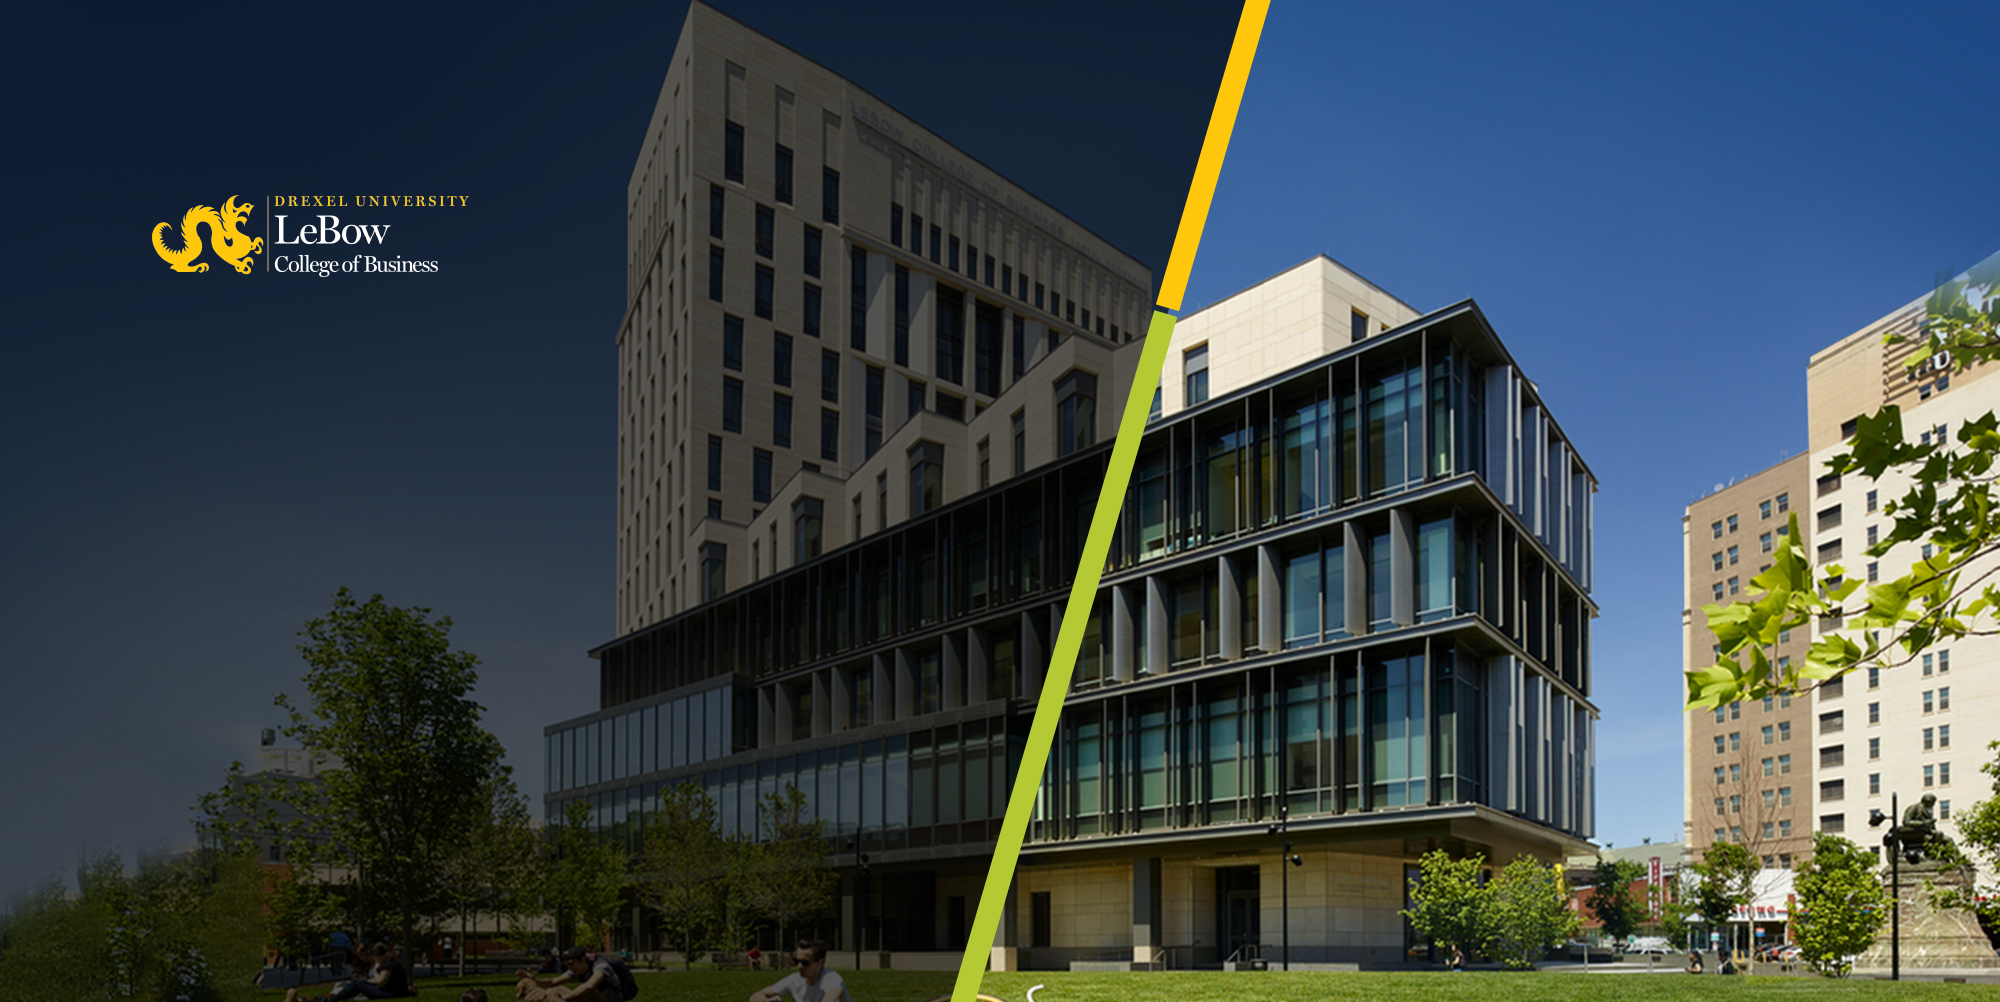 LeBow in collaboration with Asset Vantage is offering